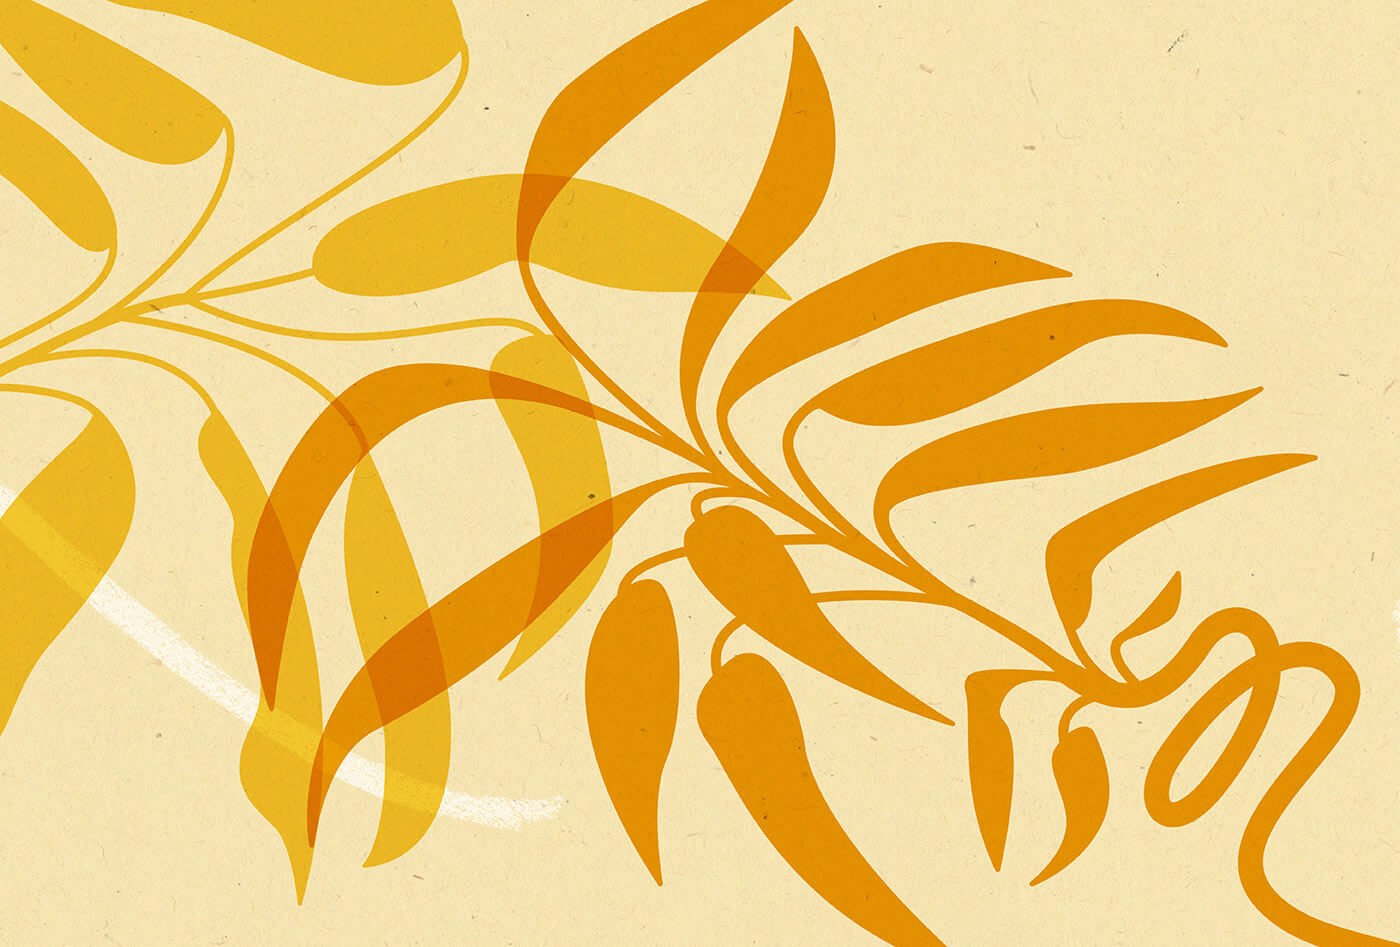 Illustration of yellow and orange lucky bamboo on cream coloured background with white textured line in background.